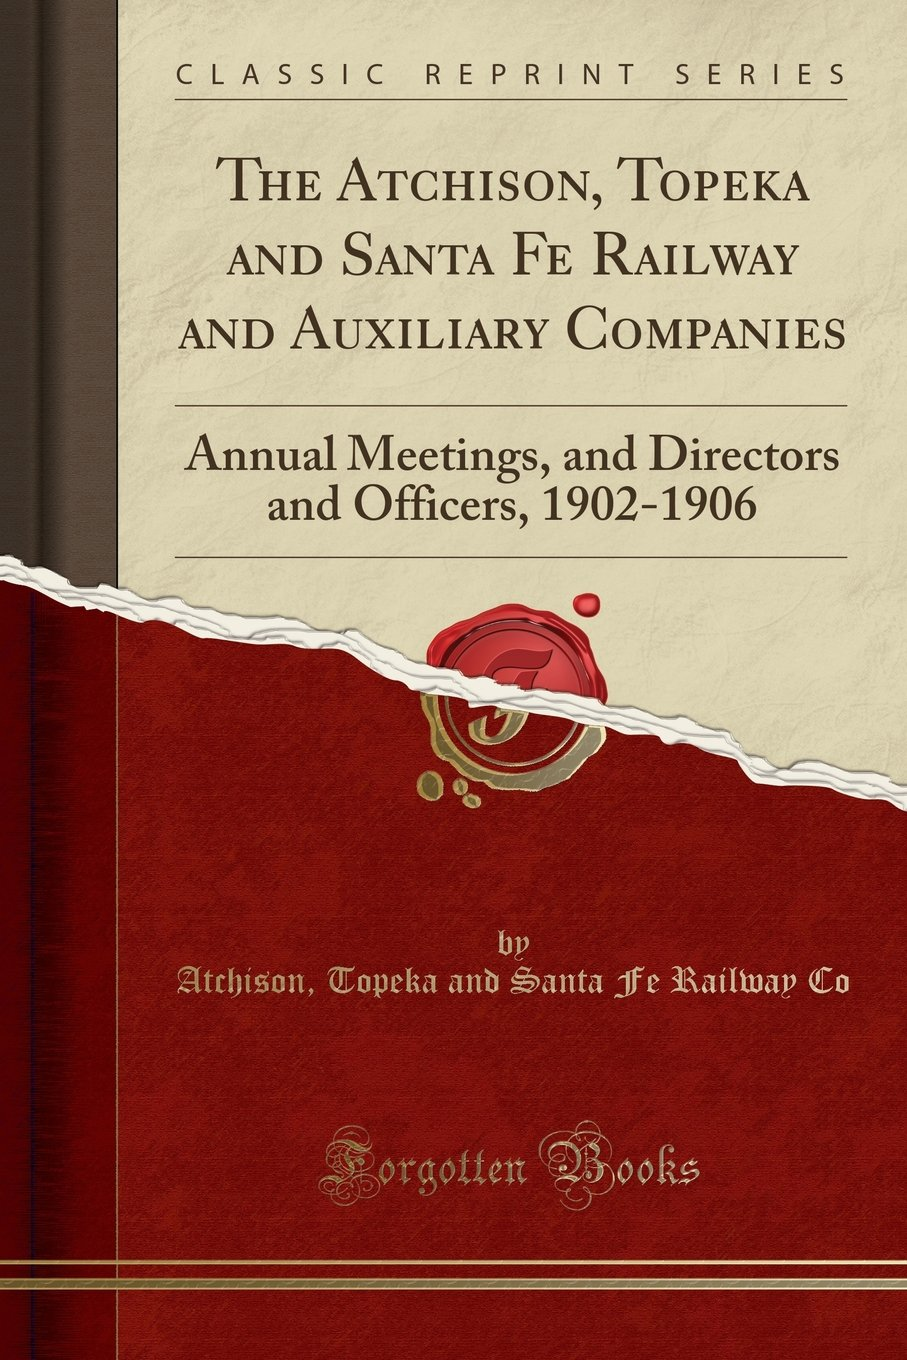 Download The Atchison, Topeka and Santa Fe Railway and Auxiliary Companies: Annual Meetings, and Directors and Officers, 1902-1906 (Classic Reprint) pdf